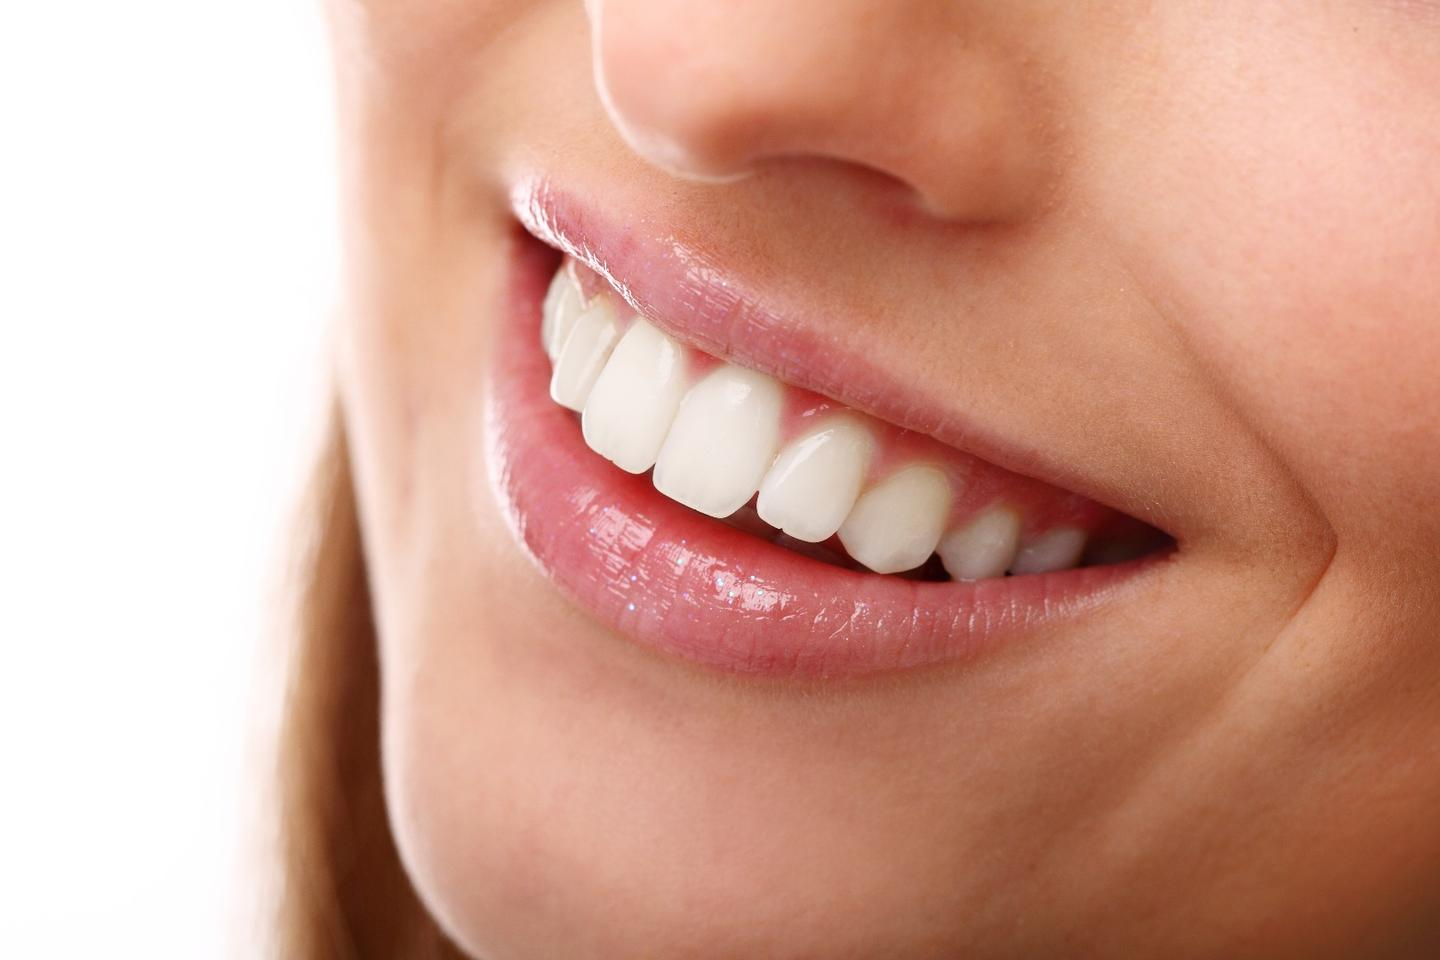 Titanium dioxide nanoparticles have been shown to whiten teeth less harmfully than commonly-used hydrogen peroxide gel